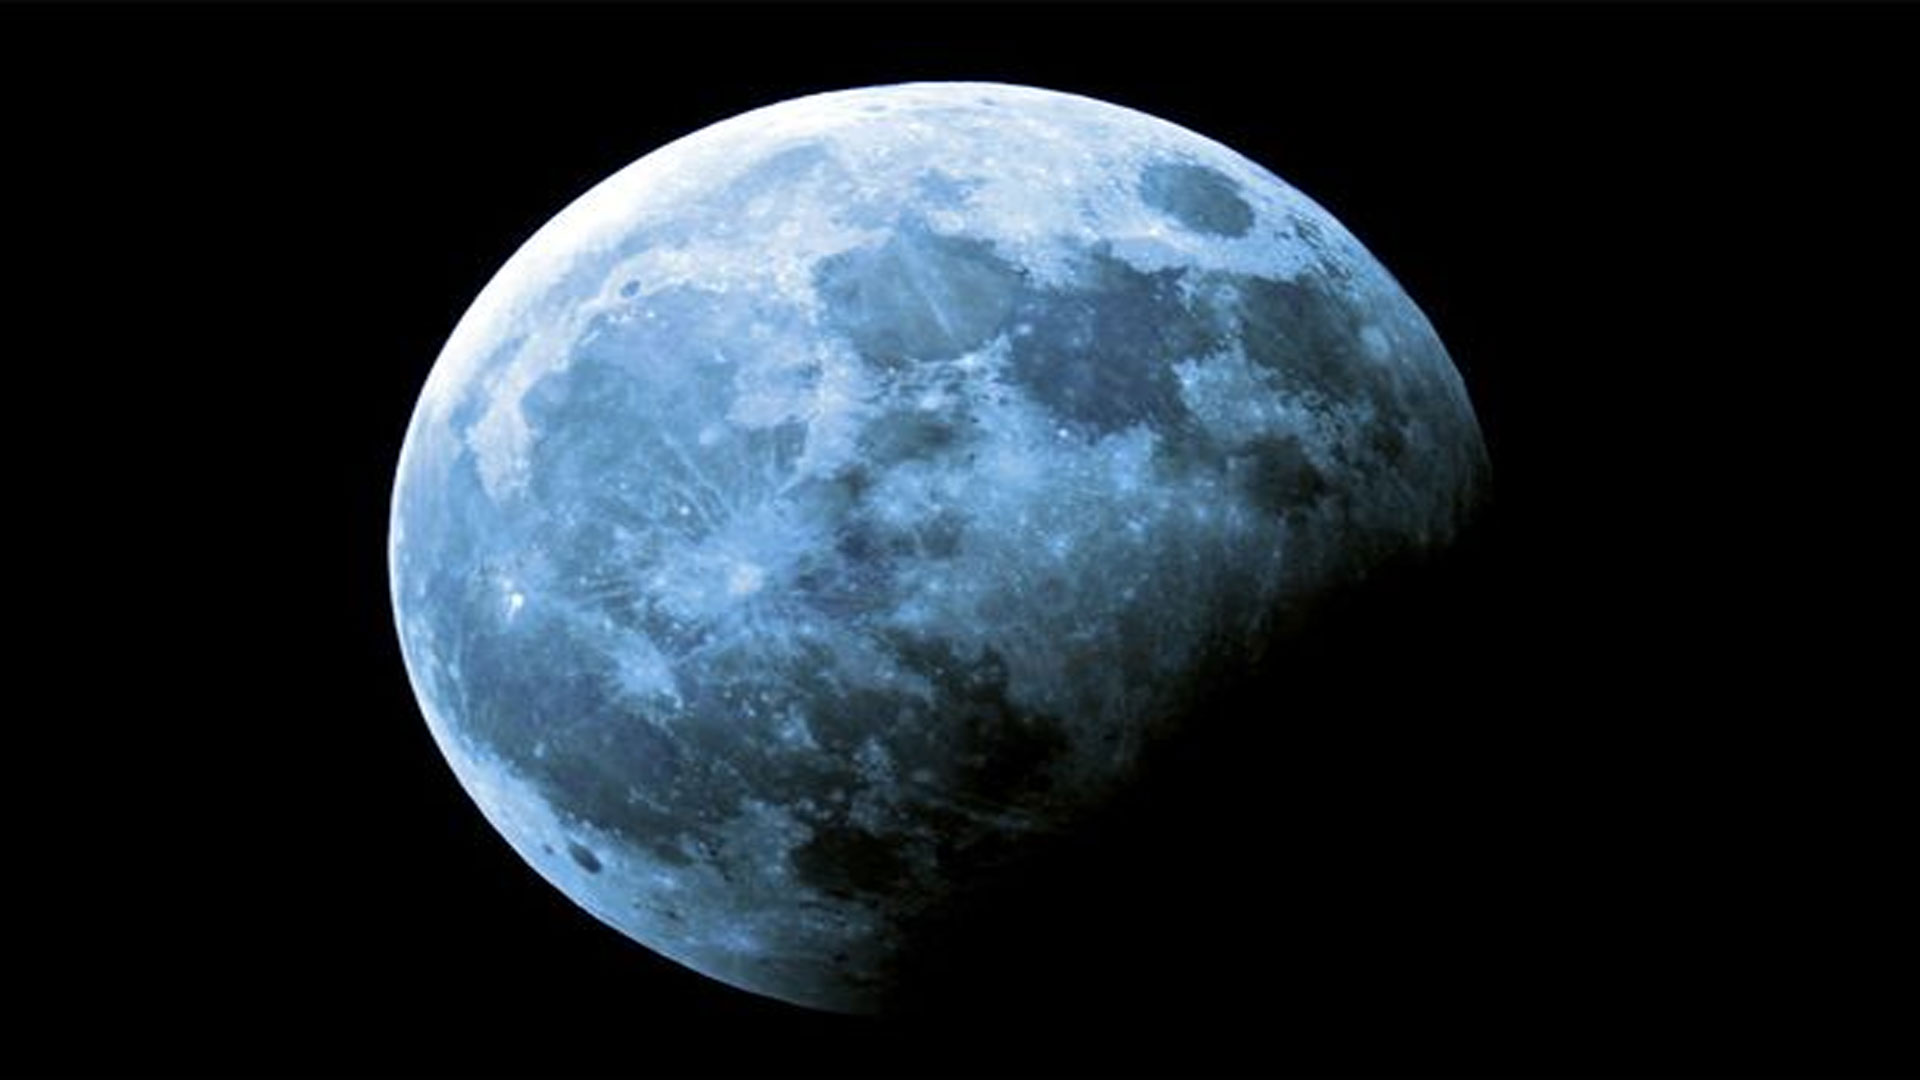 Good News Looks through a Telescope on 81st and Amsterdam NYC and sees the Super Blue Blood Moon 2018: Thanks Craig!  We also see Jupiter and Mars!  When, Where and How to See It Wednesday, Click Here for Video & Podcast…